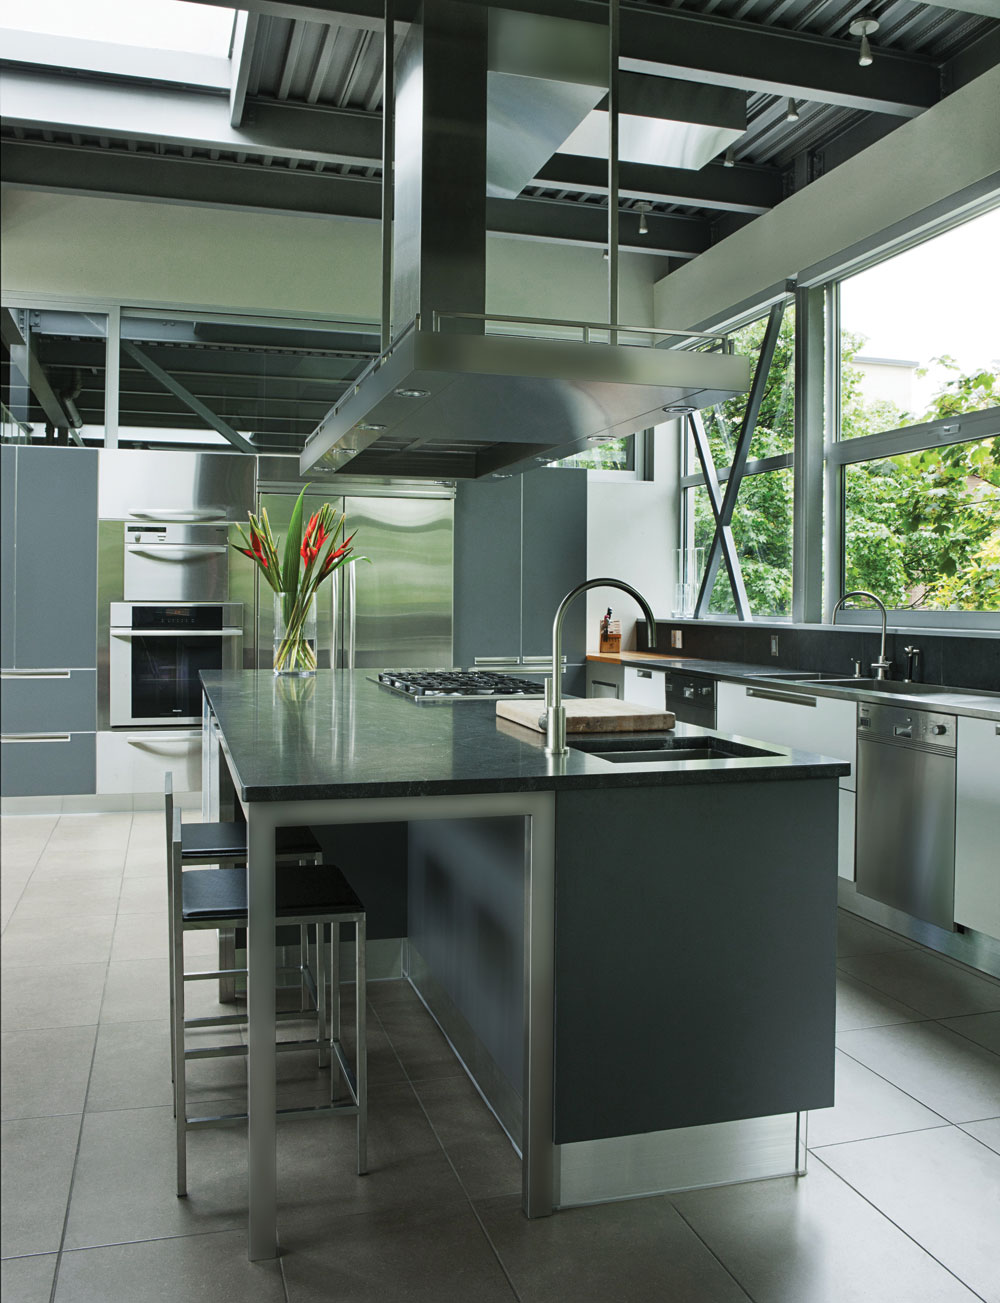 The Italian-made (Cuisilab) kitchen is a mixture of shades of gray, stainless steel (JC Perreault appliances) and granite, with a custom-designed sculptural hood.